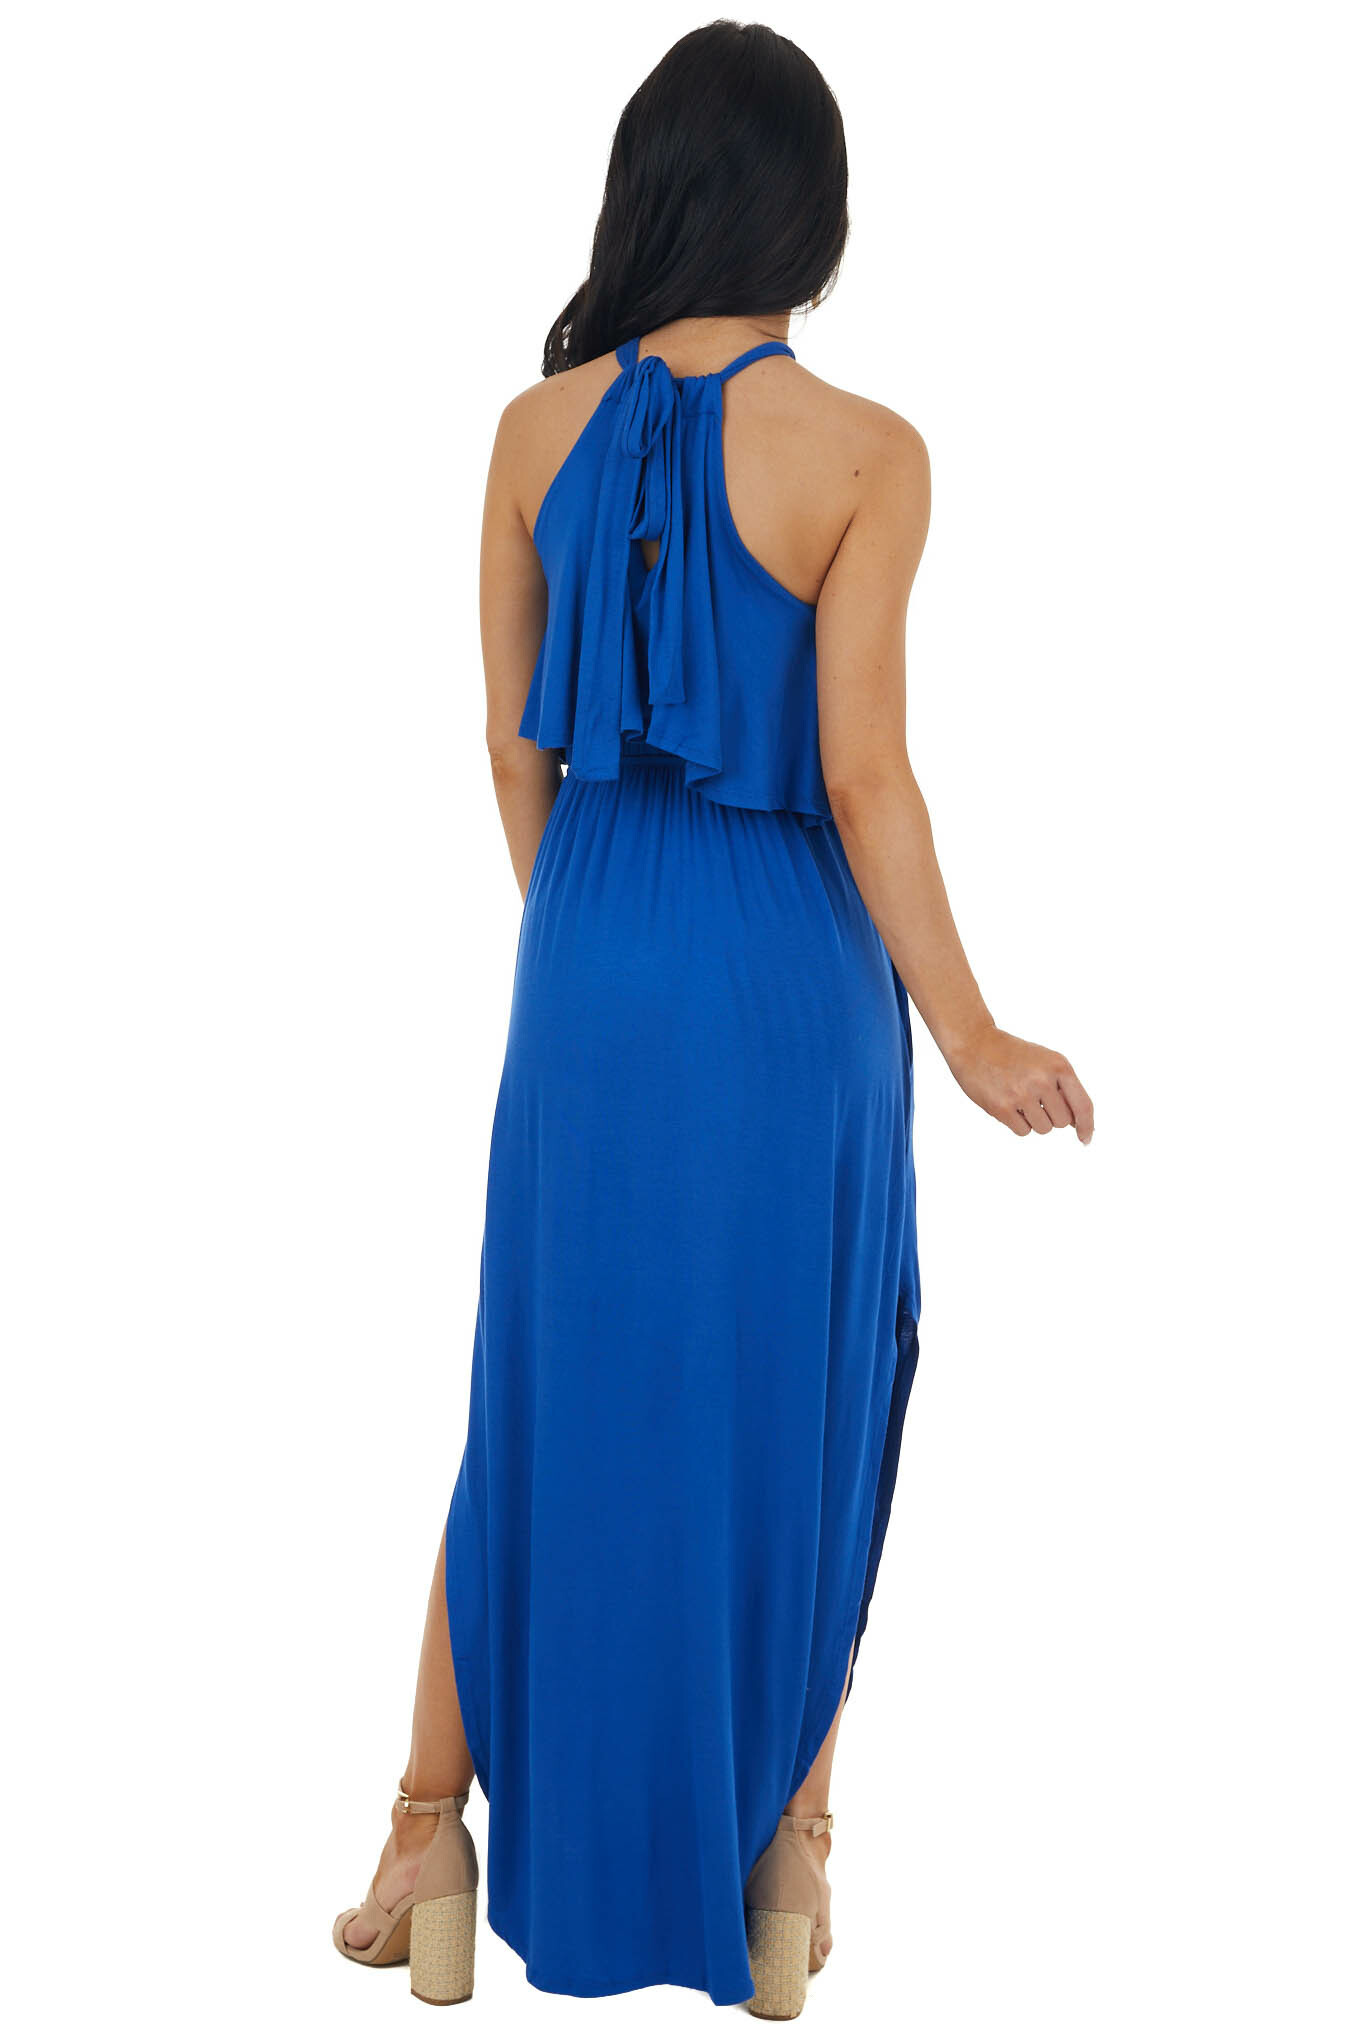 Royal Blue Halter Maxi Dress with Side Slits and Pockets